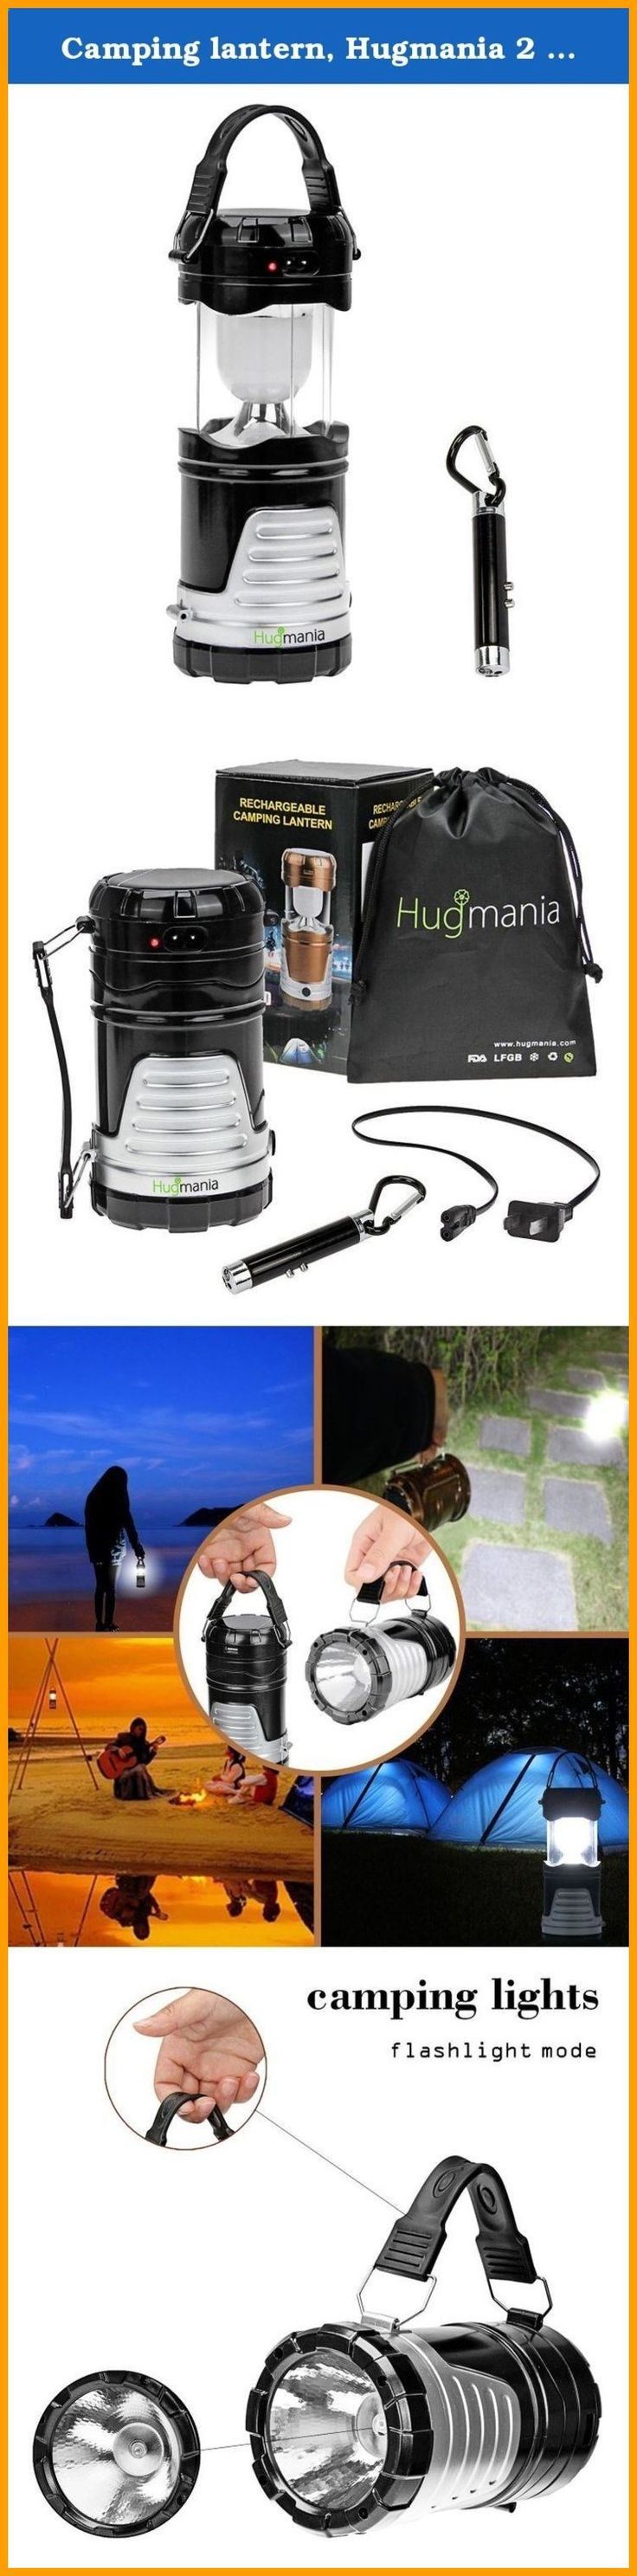 Camping Lantern - The Colman Lantern Is Positively Man's Best Friend During a Natural Disaster ** Click on the image for additional details. #igtravel